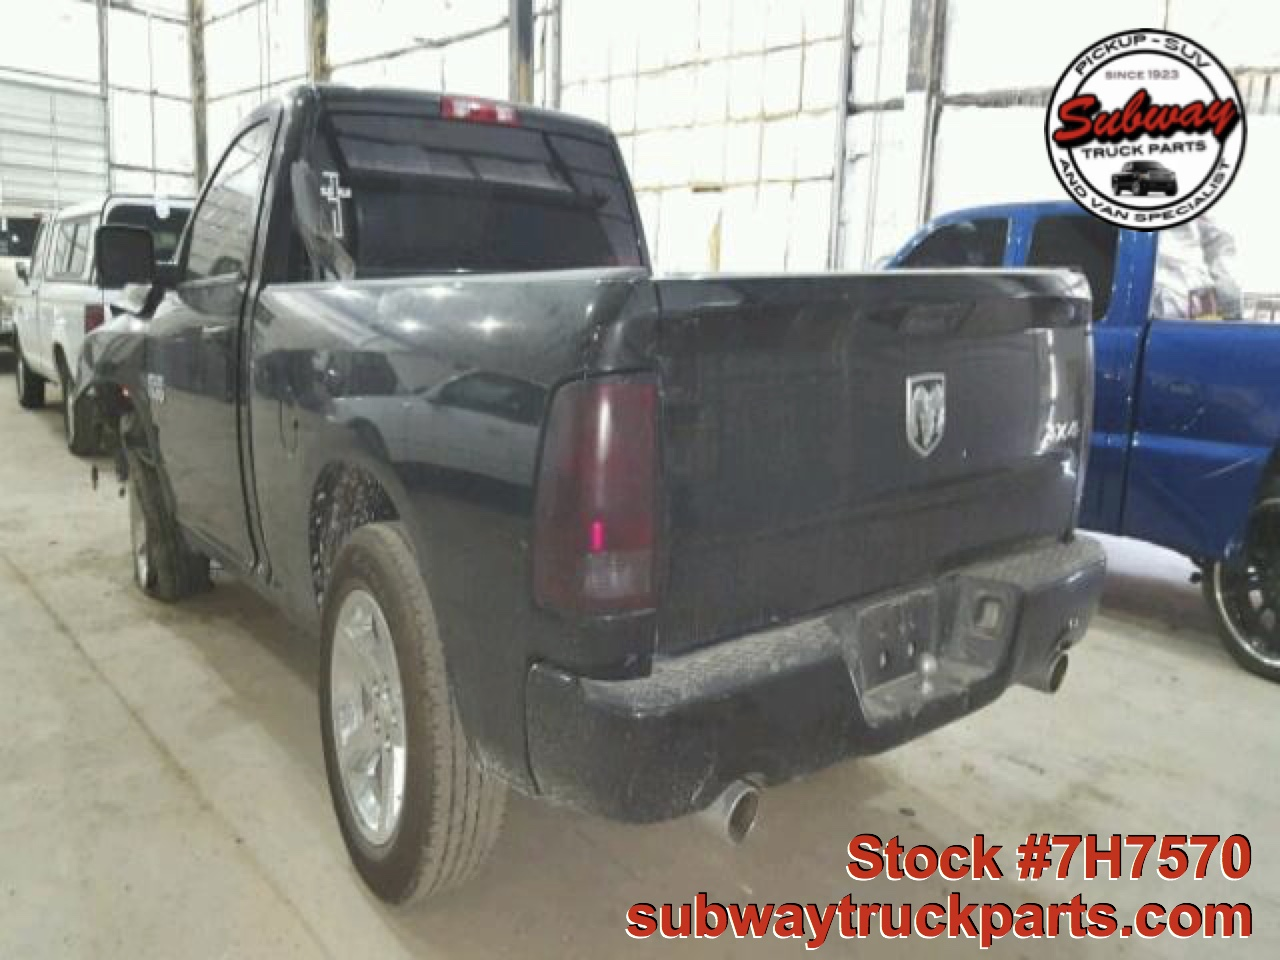 used parts 2016 dodge ram 1500 5 7l hemi 4x4 subway truck parts inc auto recycling since 1923. Black Bedroom Furniture Sets. Home Design Ideas